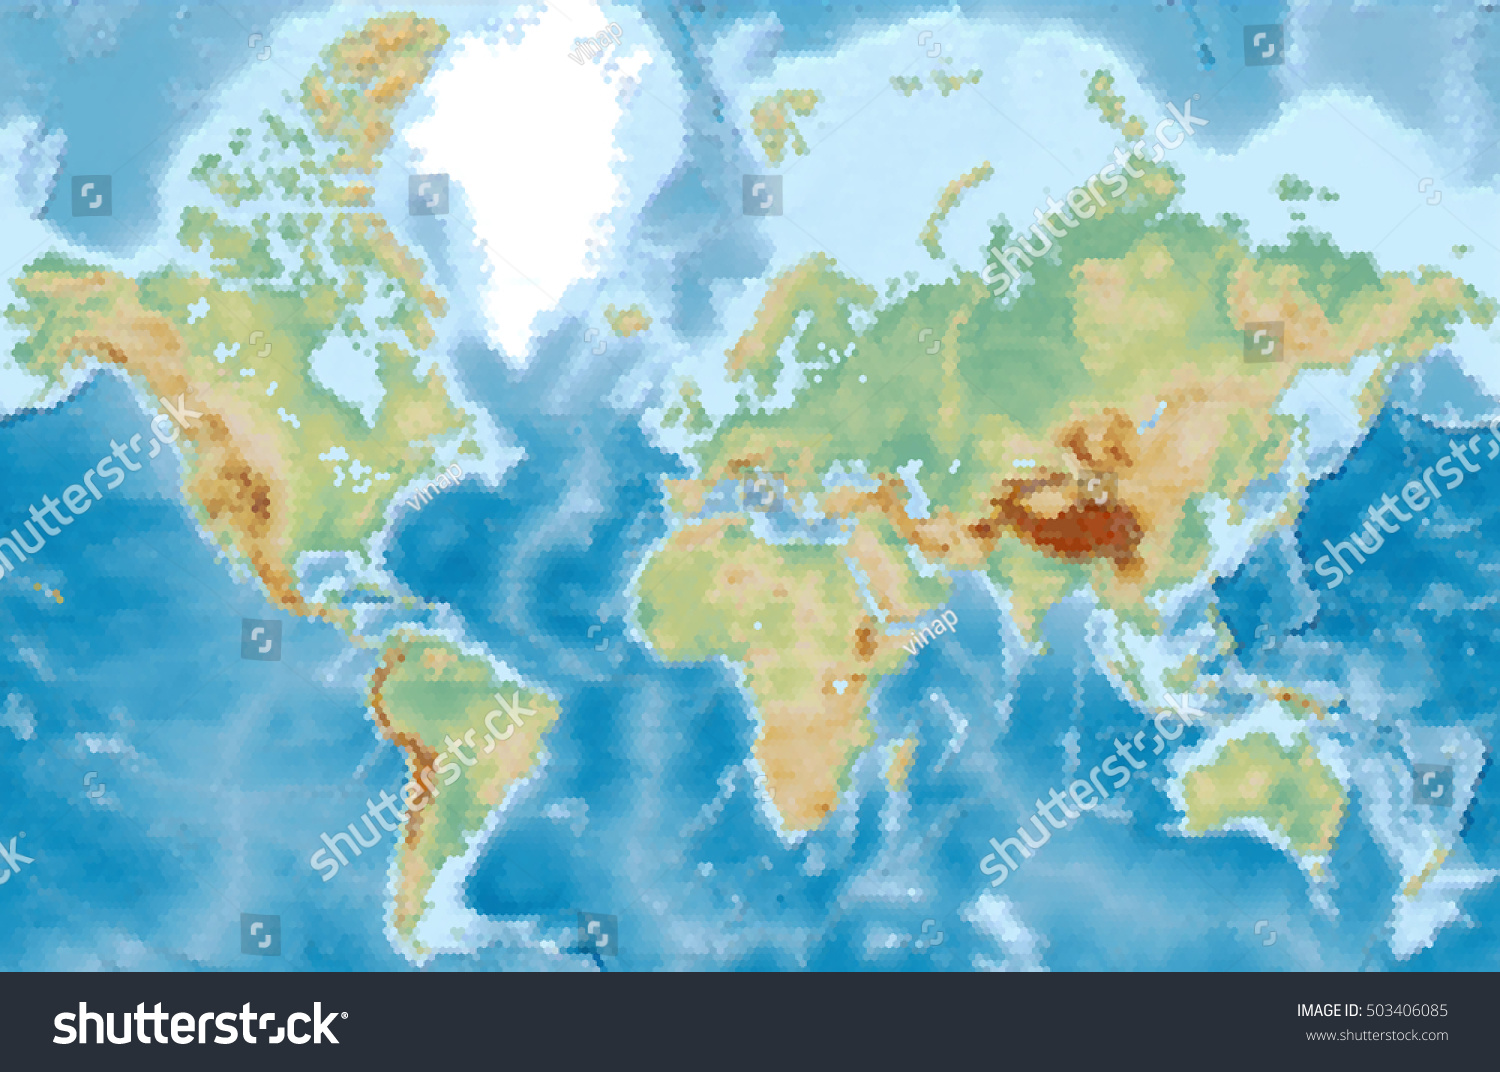 World physical vector map stylized using stock vector royalty free world physical vector map stylized using hexagons colored according to relief gumiabroncs Choice Image